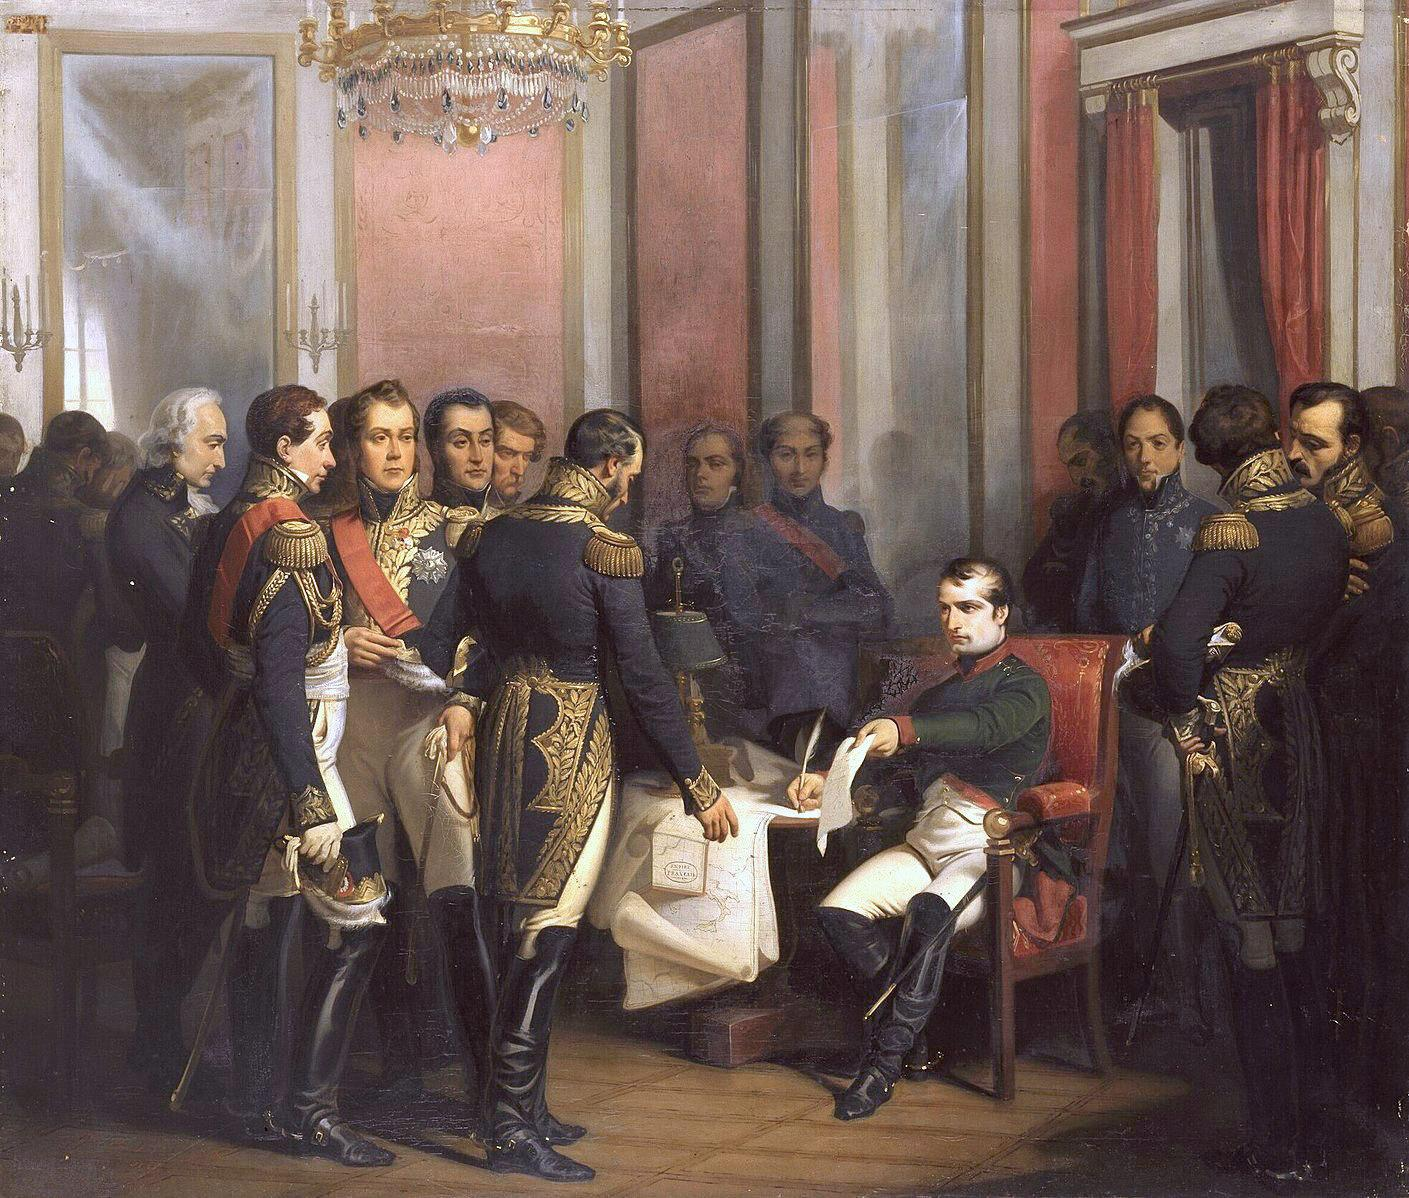 Bouchot napoleon signe son abdication a fontainebleau 4 avril 1814